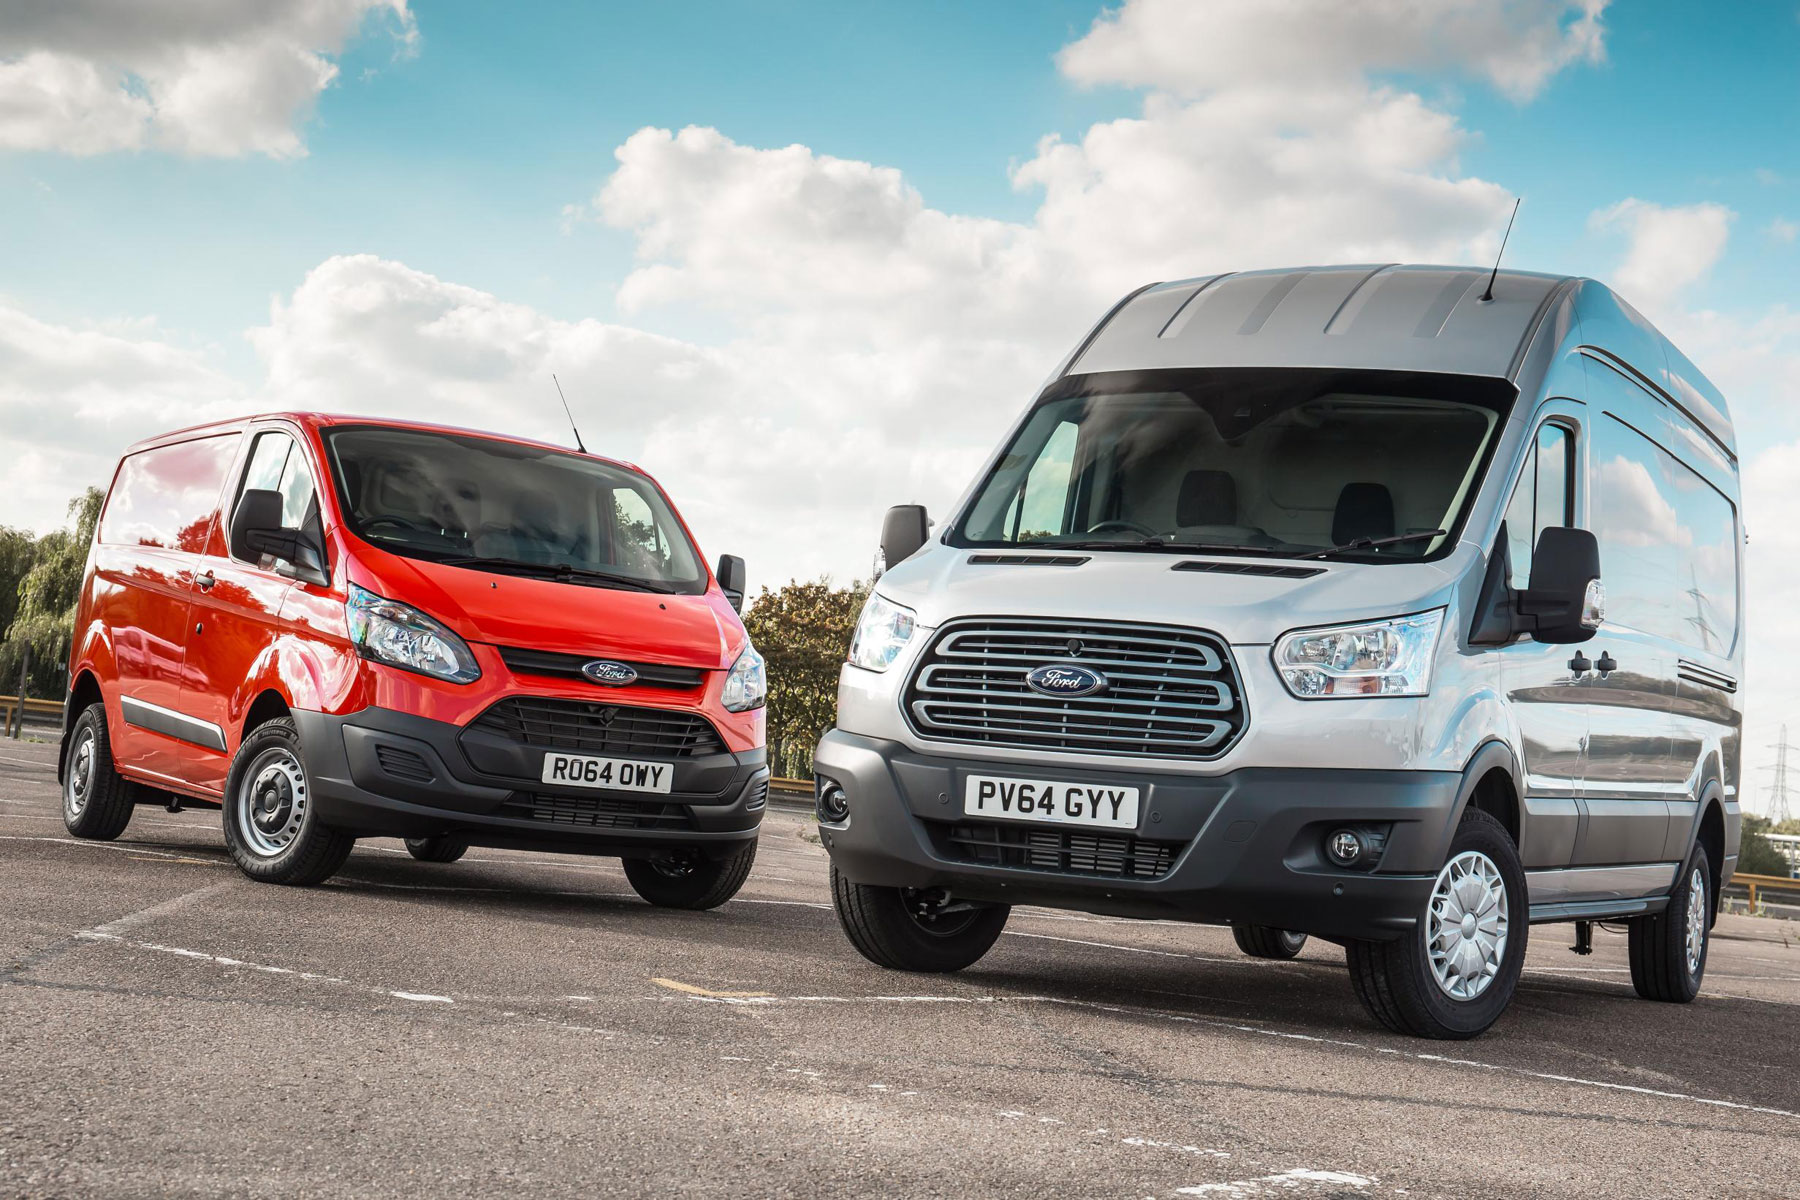 Van insurance costs rise in 2016